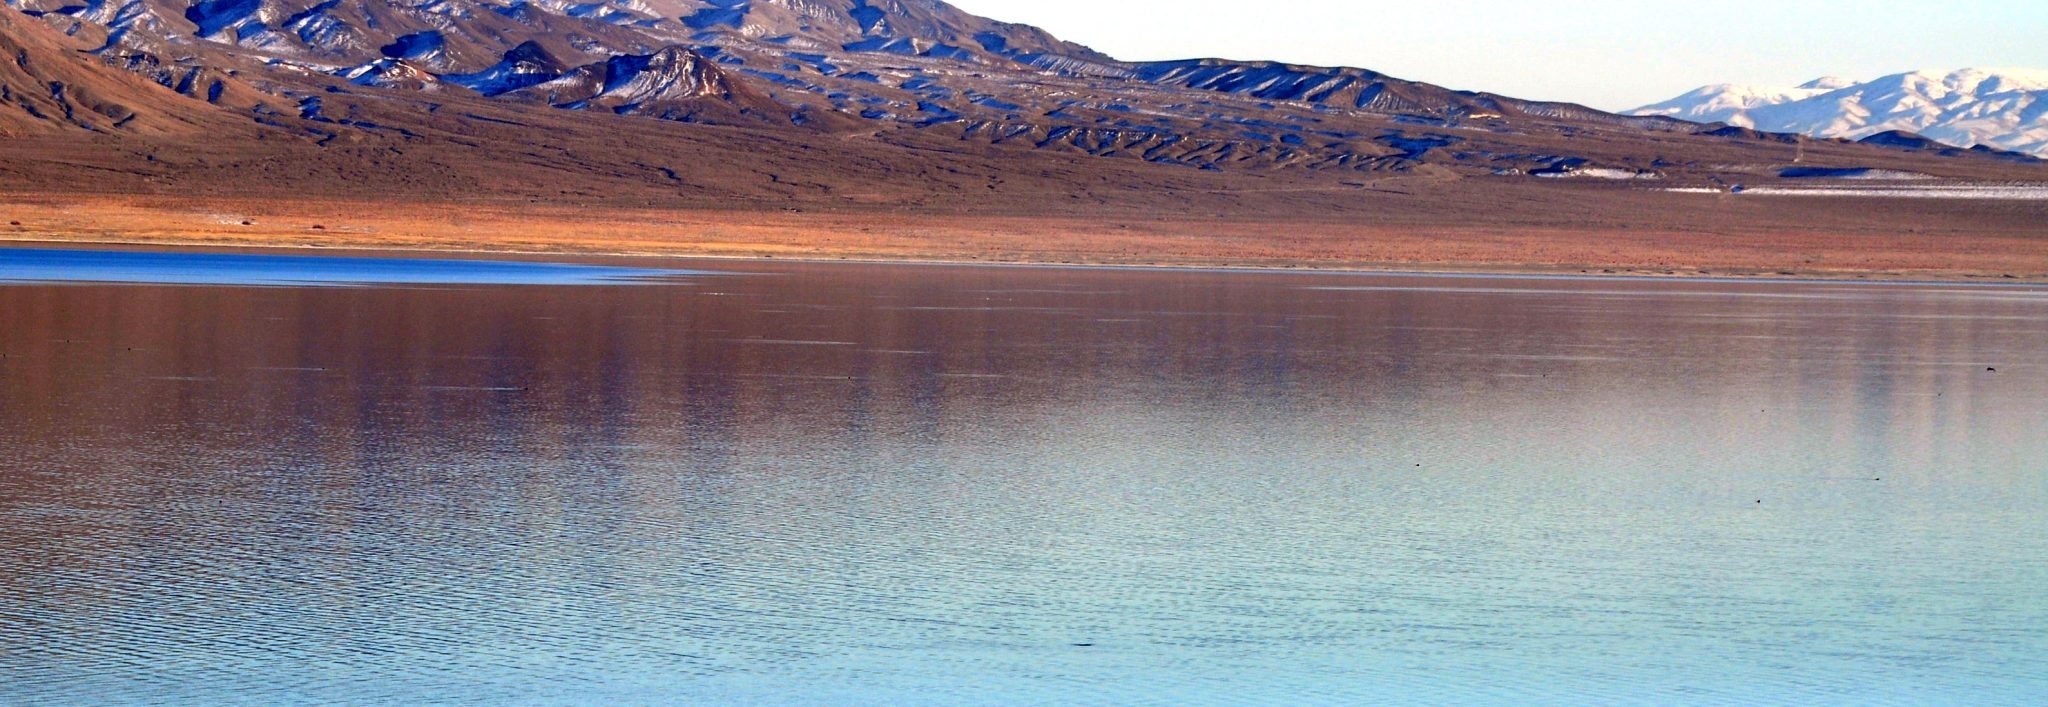 Walker Lake could benefit from turbine project